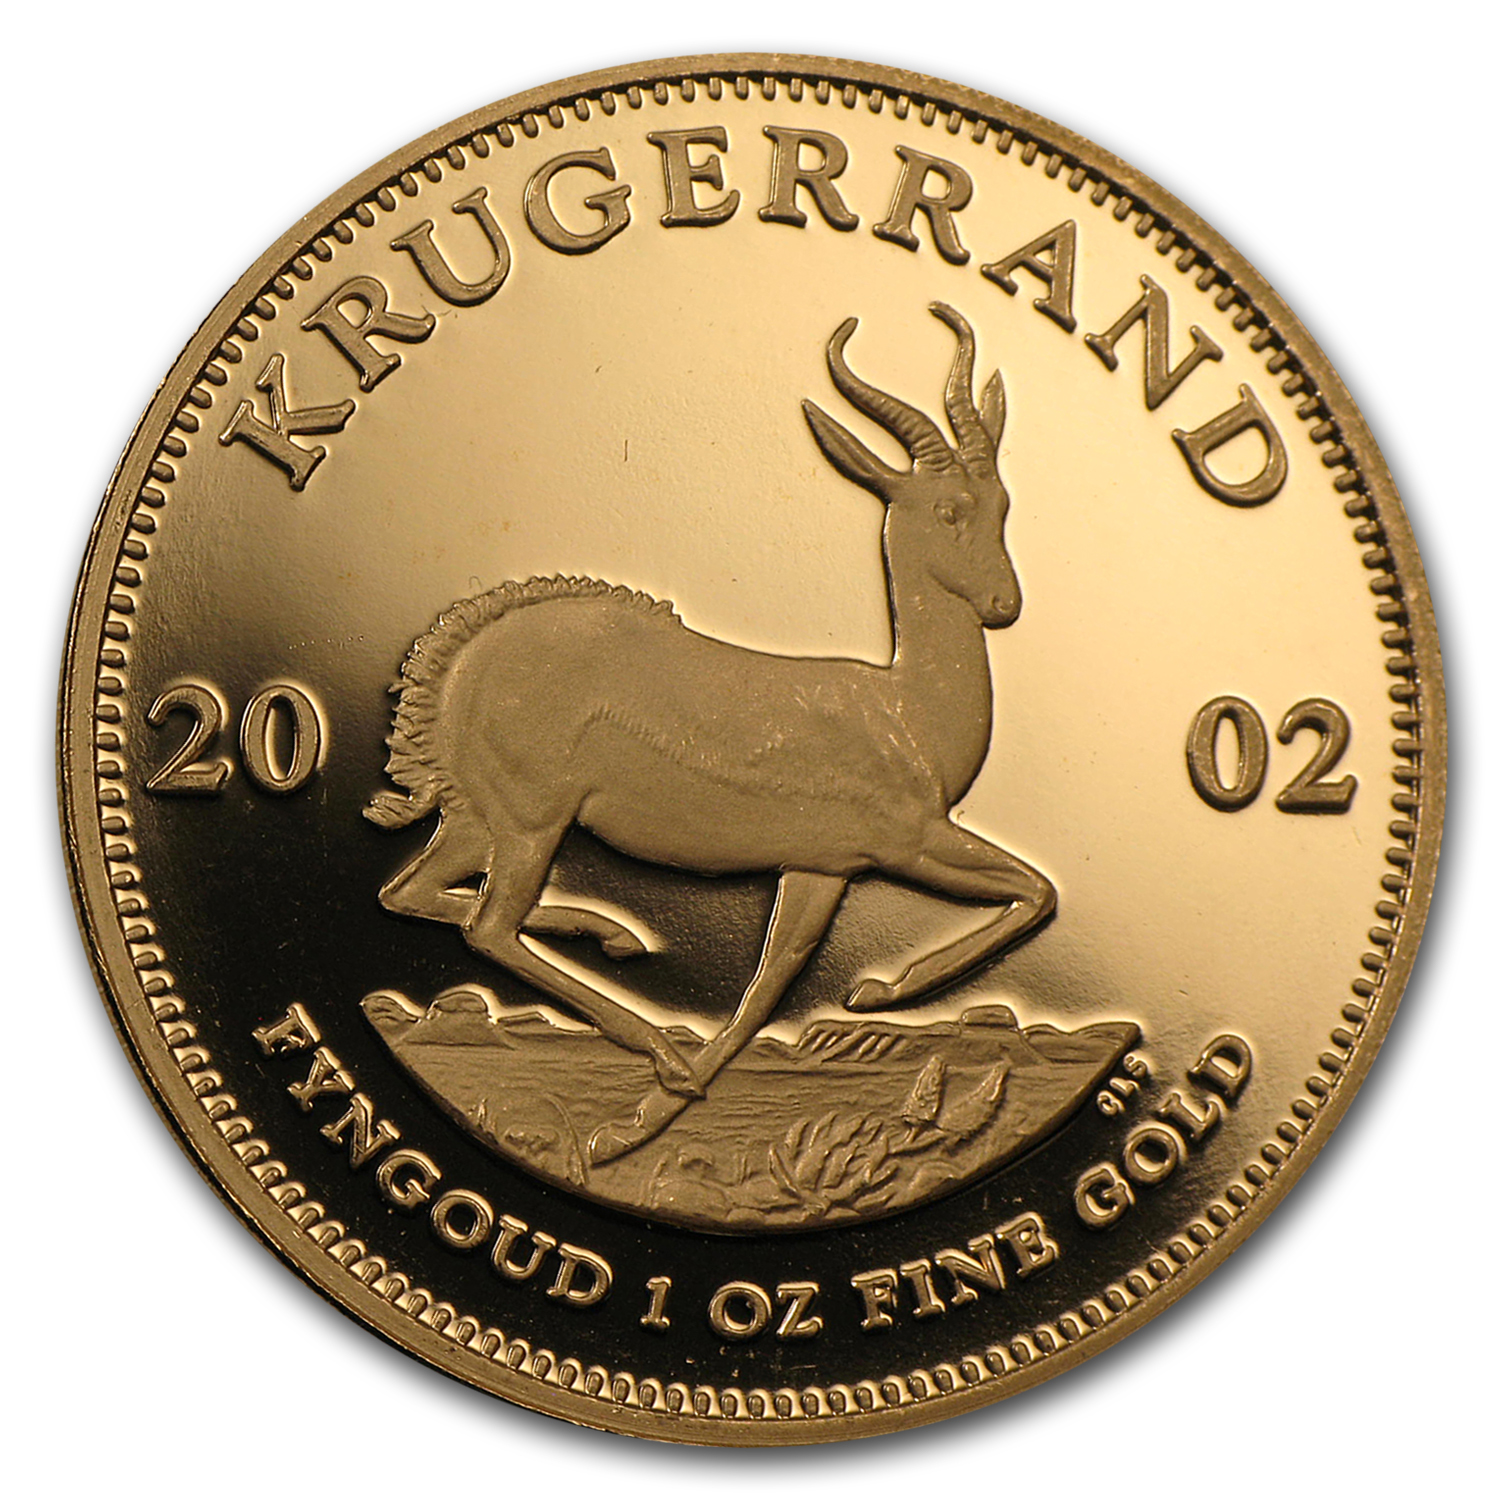 2002 South Africa 1 oz Proof Gold Krugerrand (Coin Only)